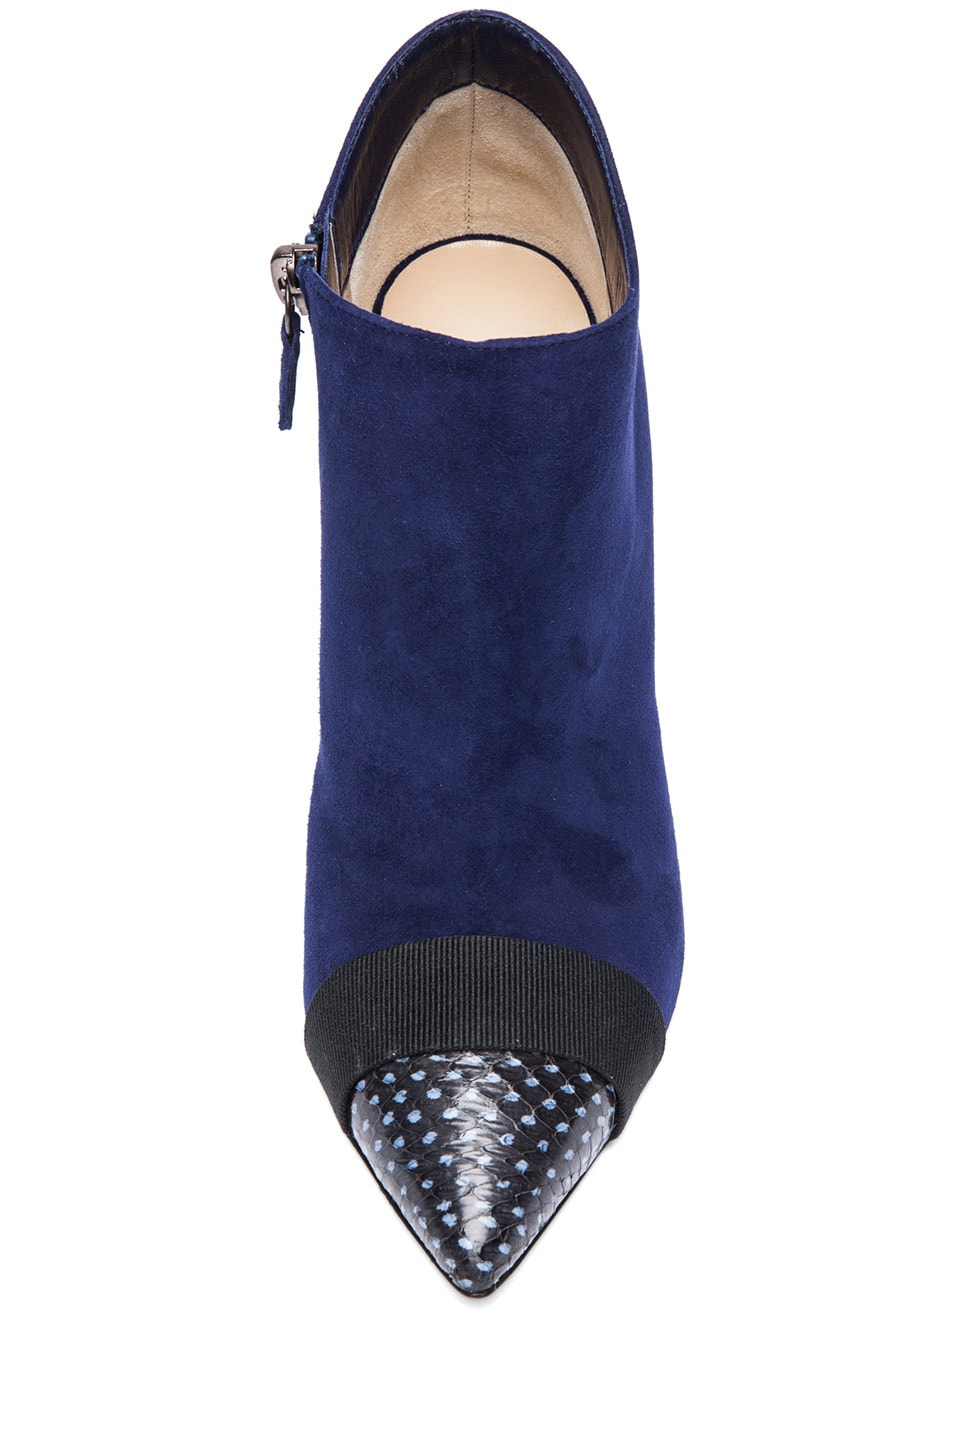 Image 4 of Nicholas Kirkwood Suede Ankle Boots in Black & Indigo